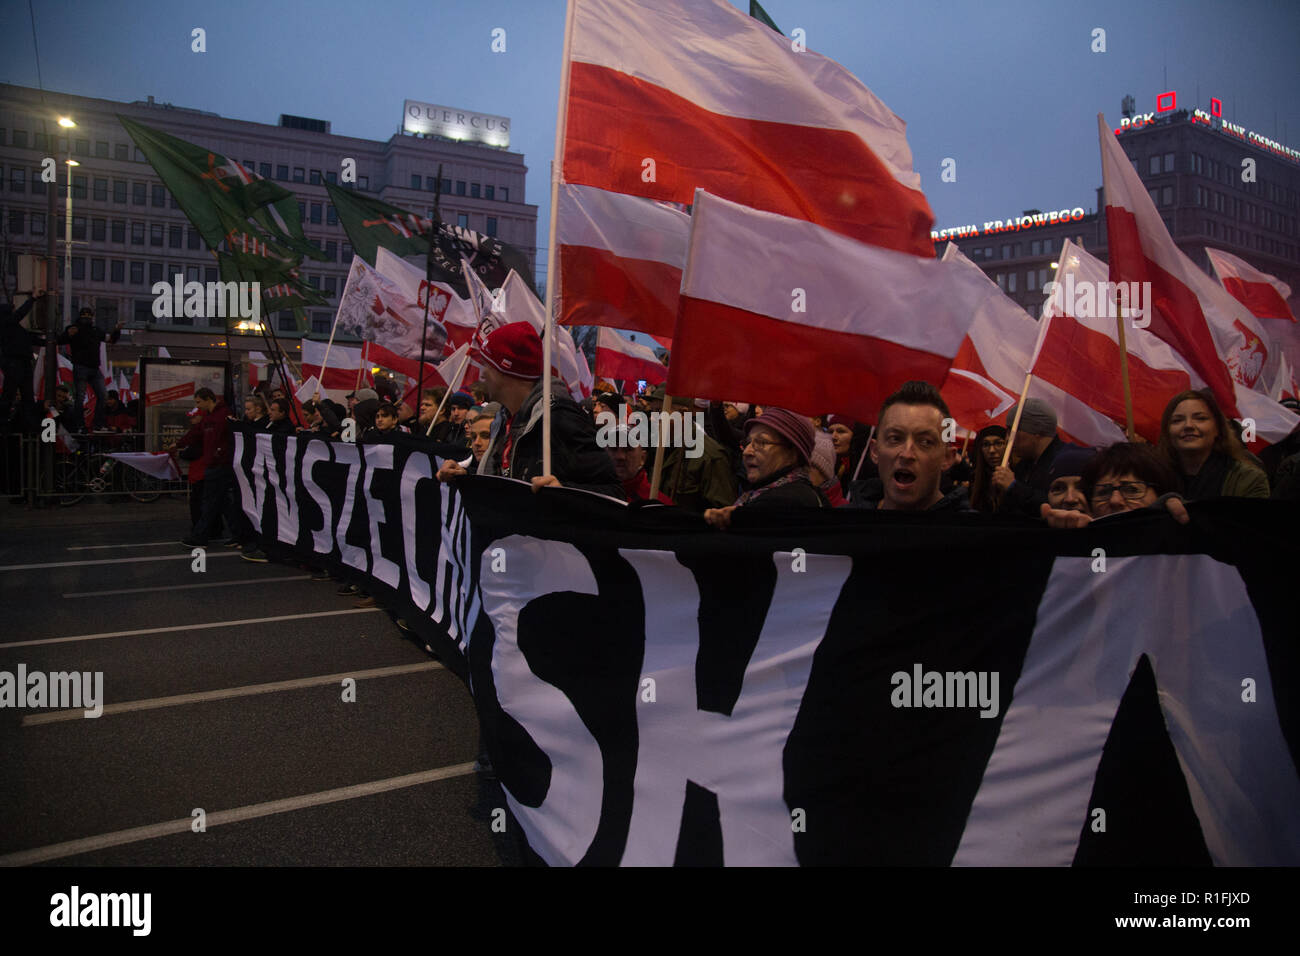 Warsaw, Poland, 11 November 2018: Celebrations of Polish Independence Day in a mass march that gathered more than 200 thousand people - All-Polish Youth (Młodzież Wszechpolska) - Stock Image